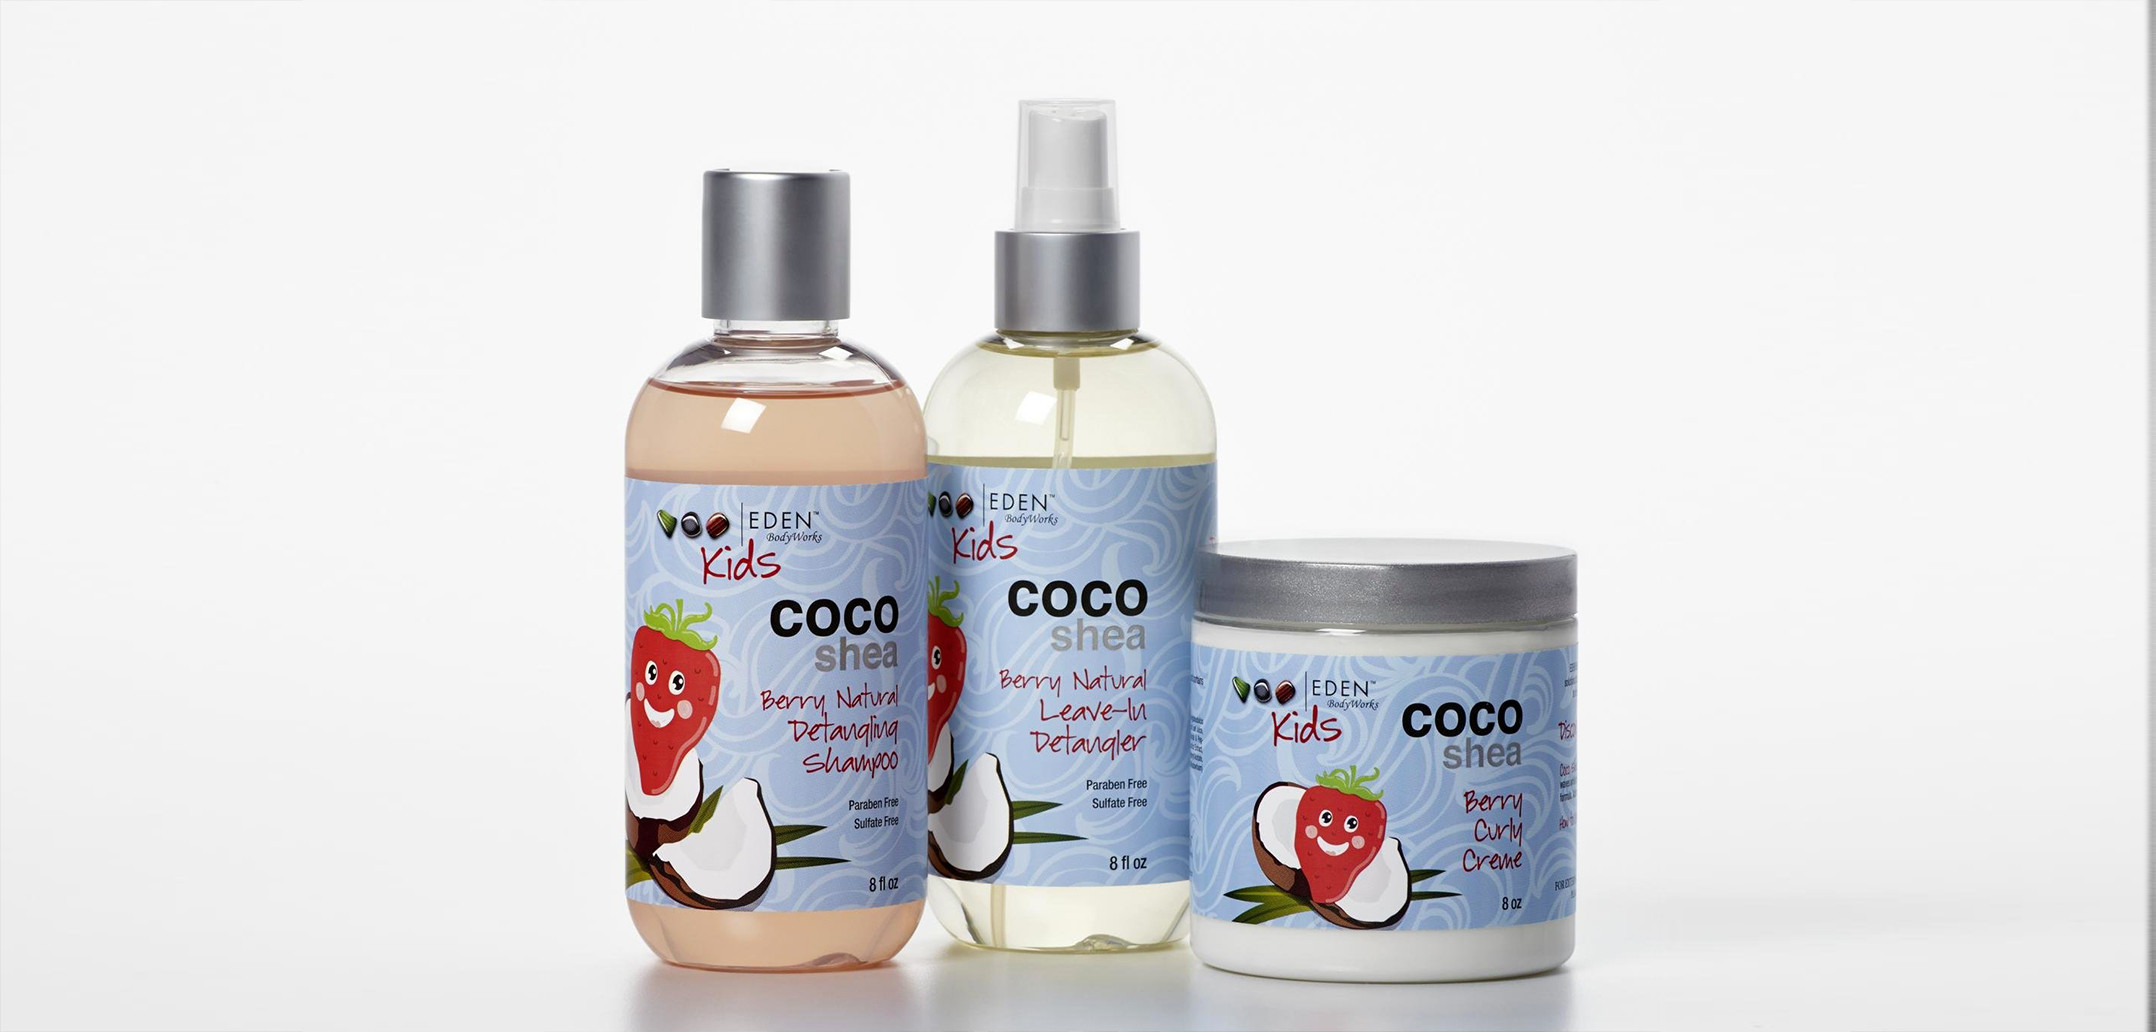 Natural Hair Products For Kids  Top 10 Natural Hair Kids Product Lines